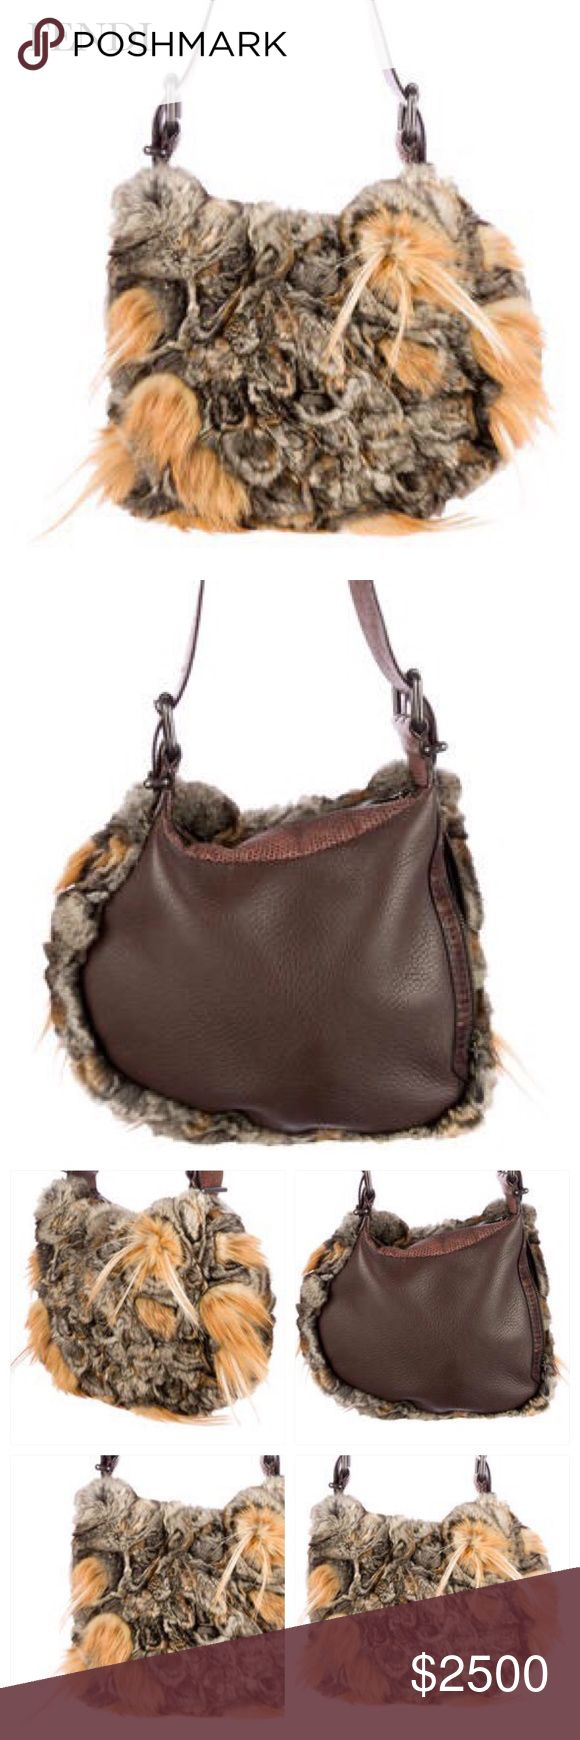 "FENDI CREAM & TAN FUR BAG Fendi bag with fox fur accents, top handle & zipper closure. Hardware: gunmetal-tone. Lining: Satin. Color: Black and light brown chinchilla. Very minimal light wear at corners. Fabulous Bag! Approx Measurements: Shoulder Strap Drop 11"", Height 9"", Width 10"", Depth .25"". Condition: Excellent. Sold Out. Rare & Beautiful Fendi Bags"